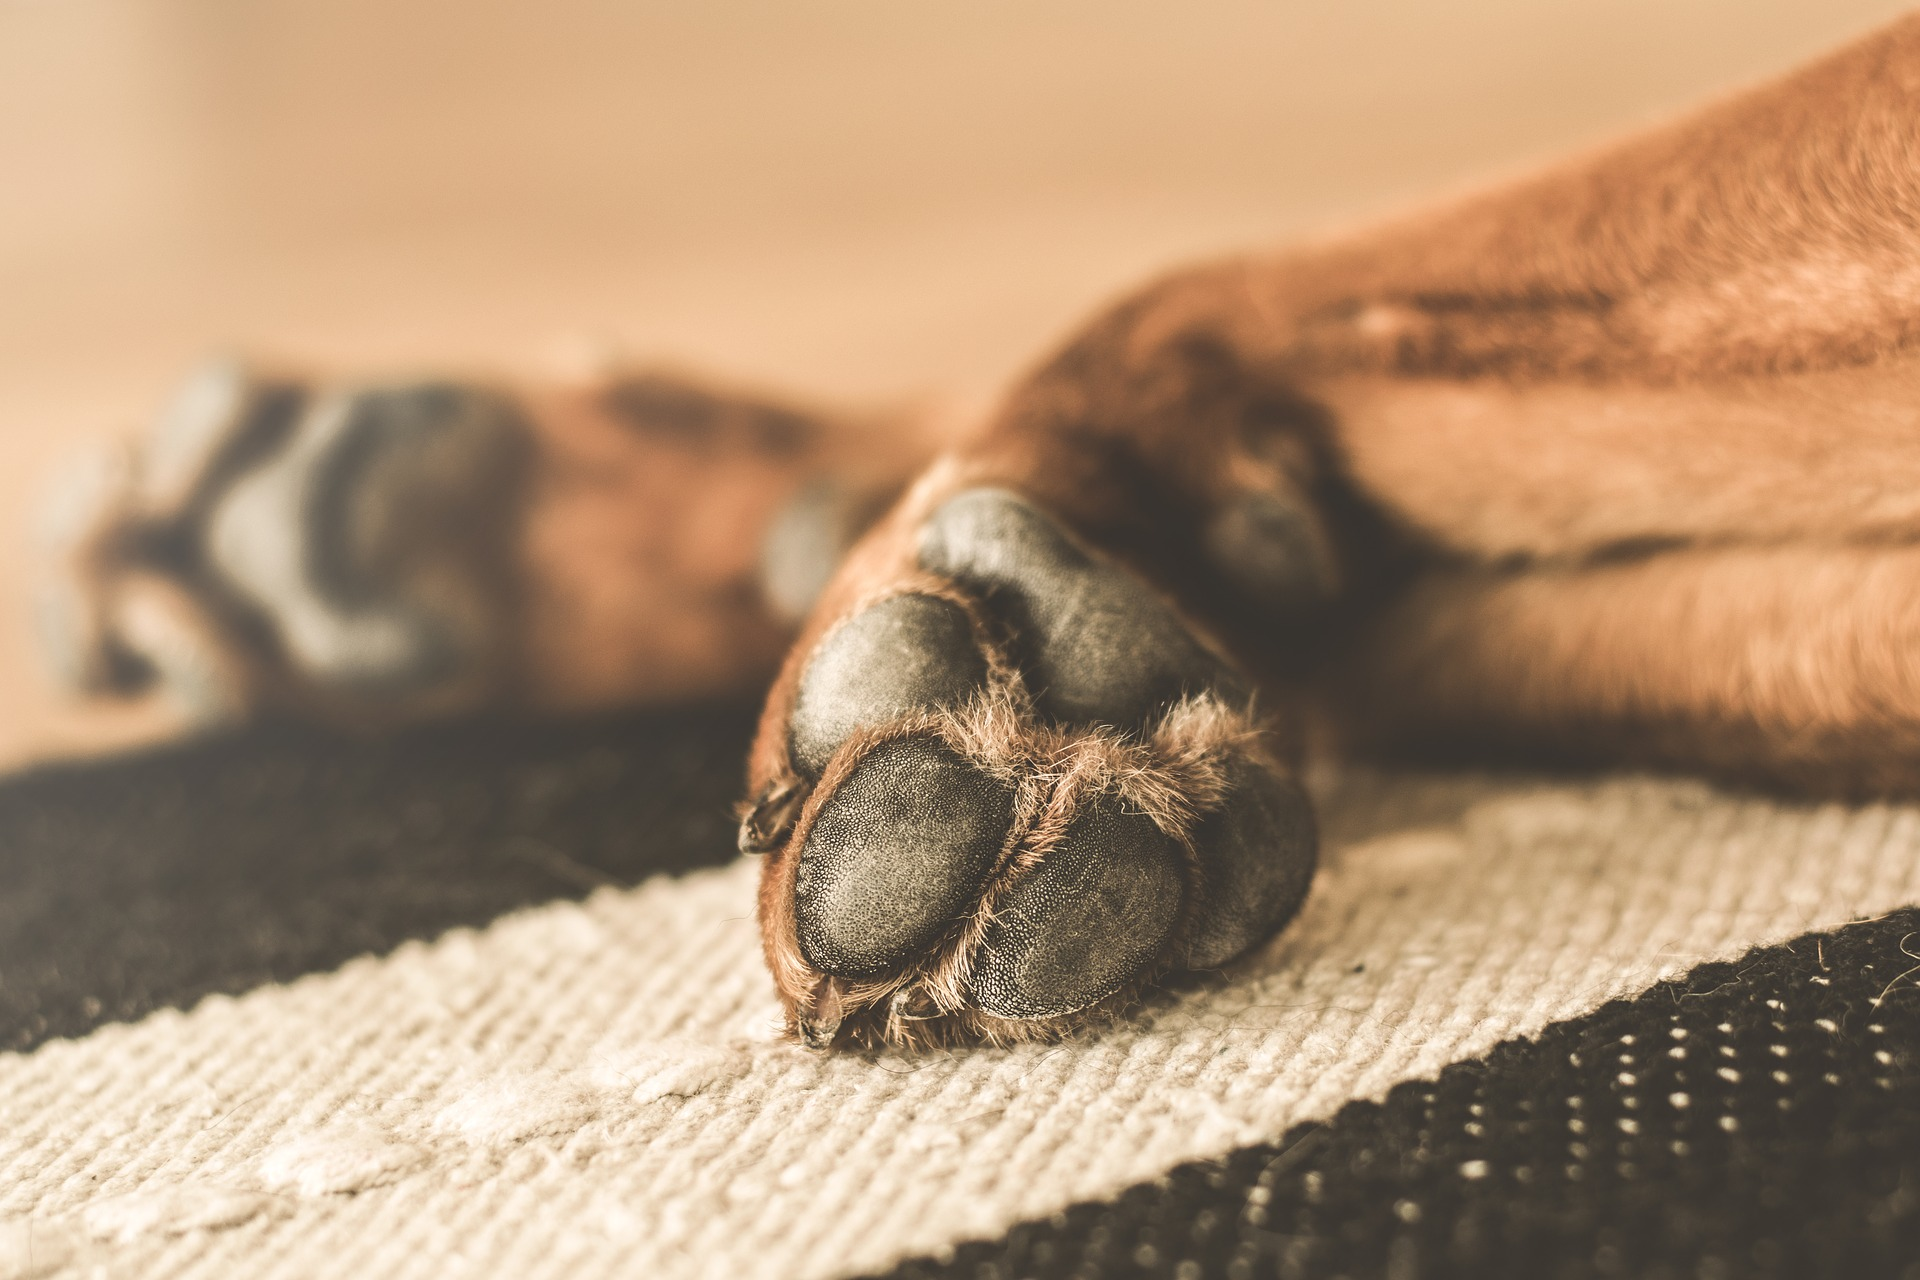 How To Care For Cracks in Pet Paws